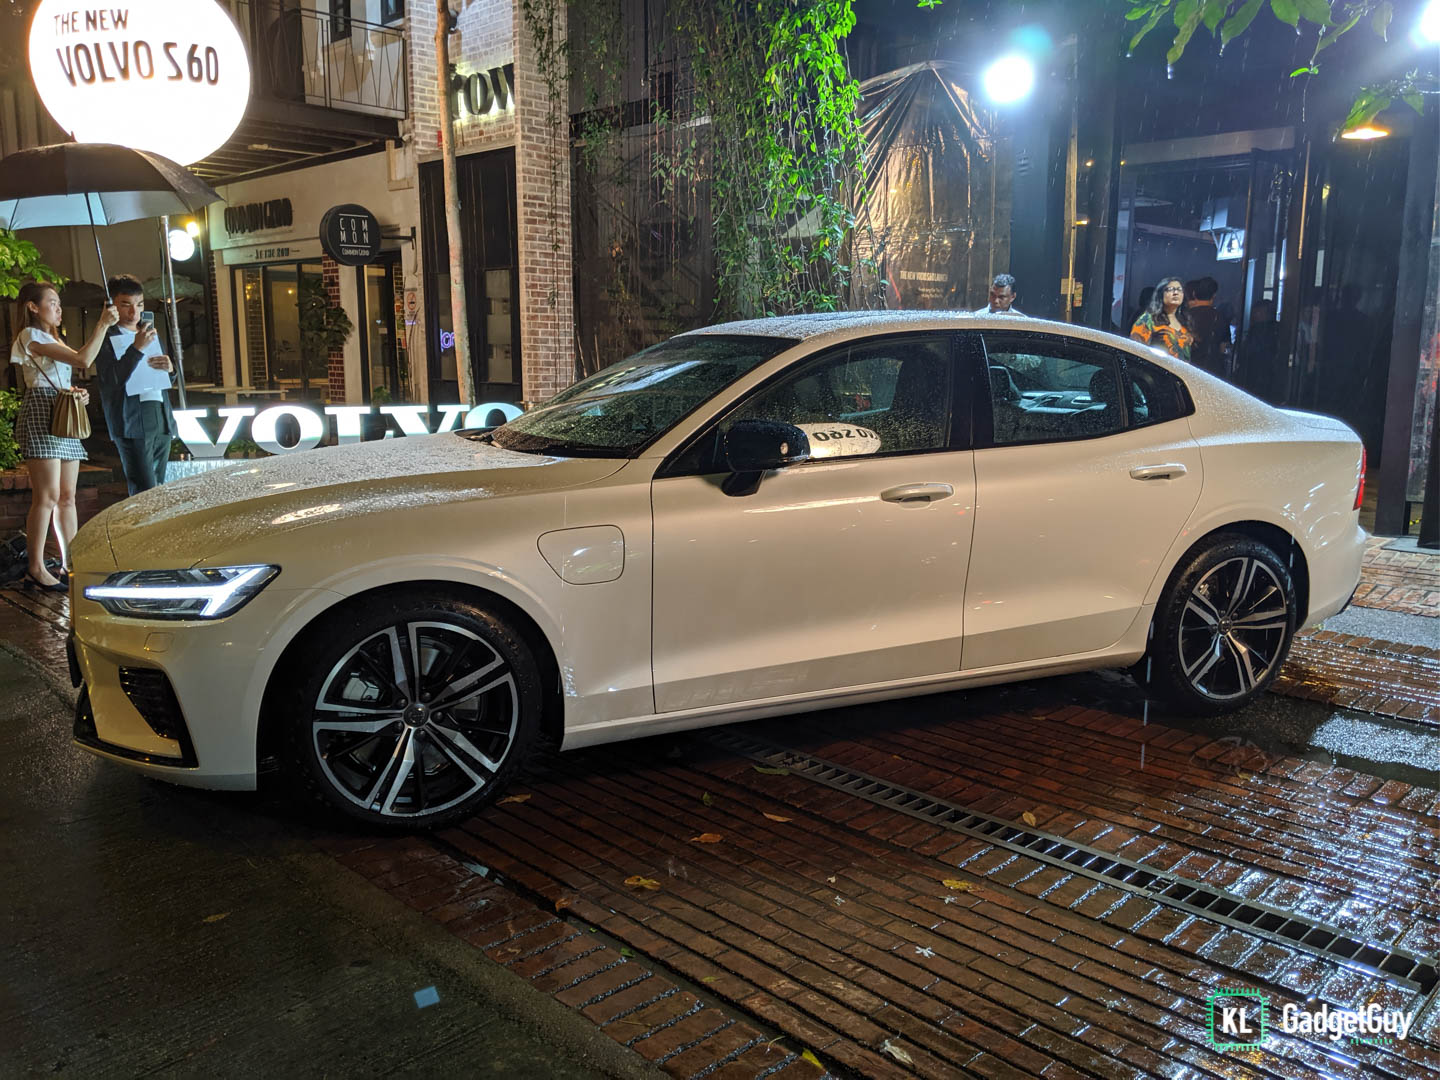 The new Volvo S60 offers 407hp and 640Nm for RM295k in Malaysia 12